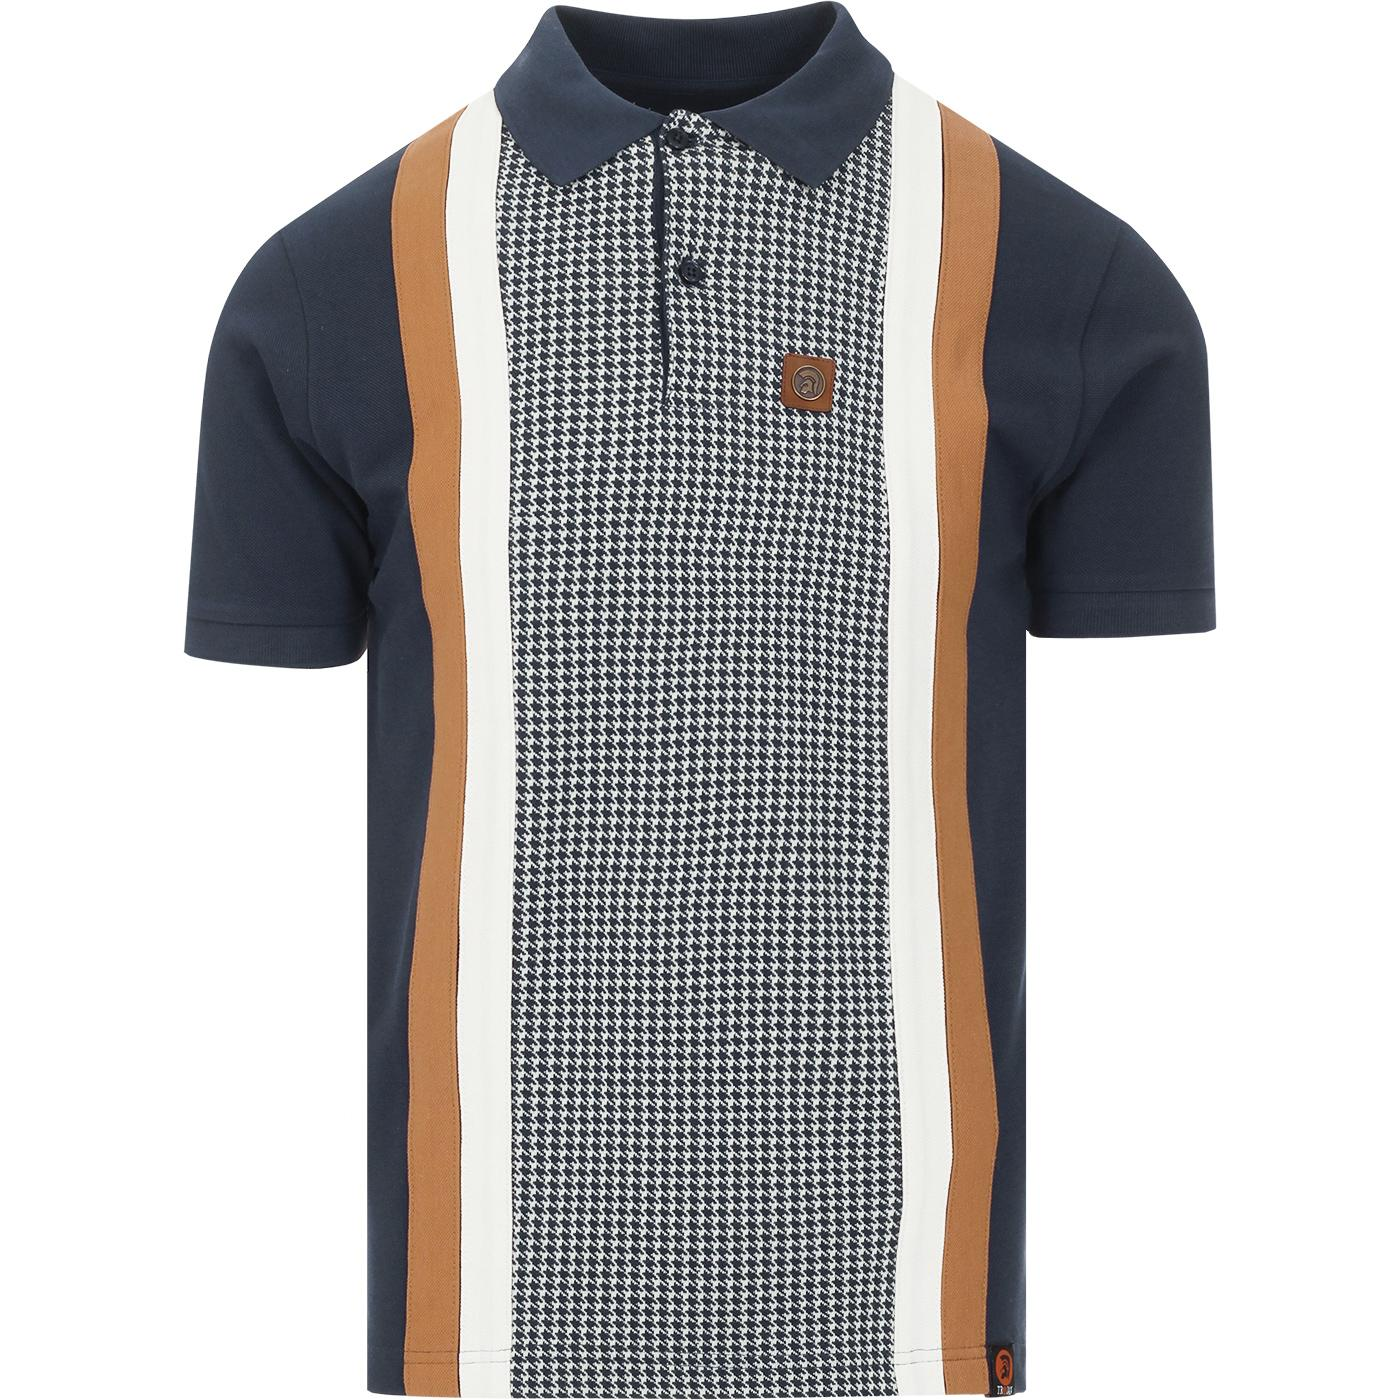 TROJAN RECORDS Mod Dogtooth Braces Stripe Polo (N)